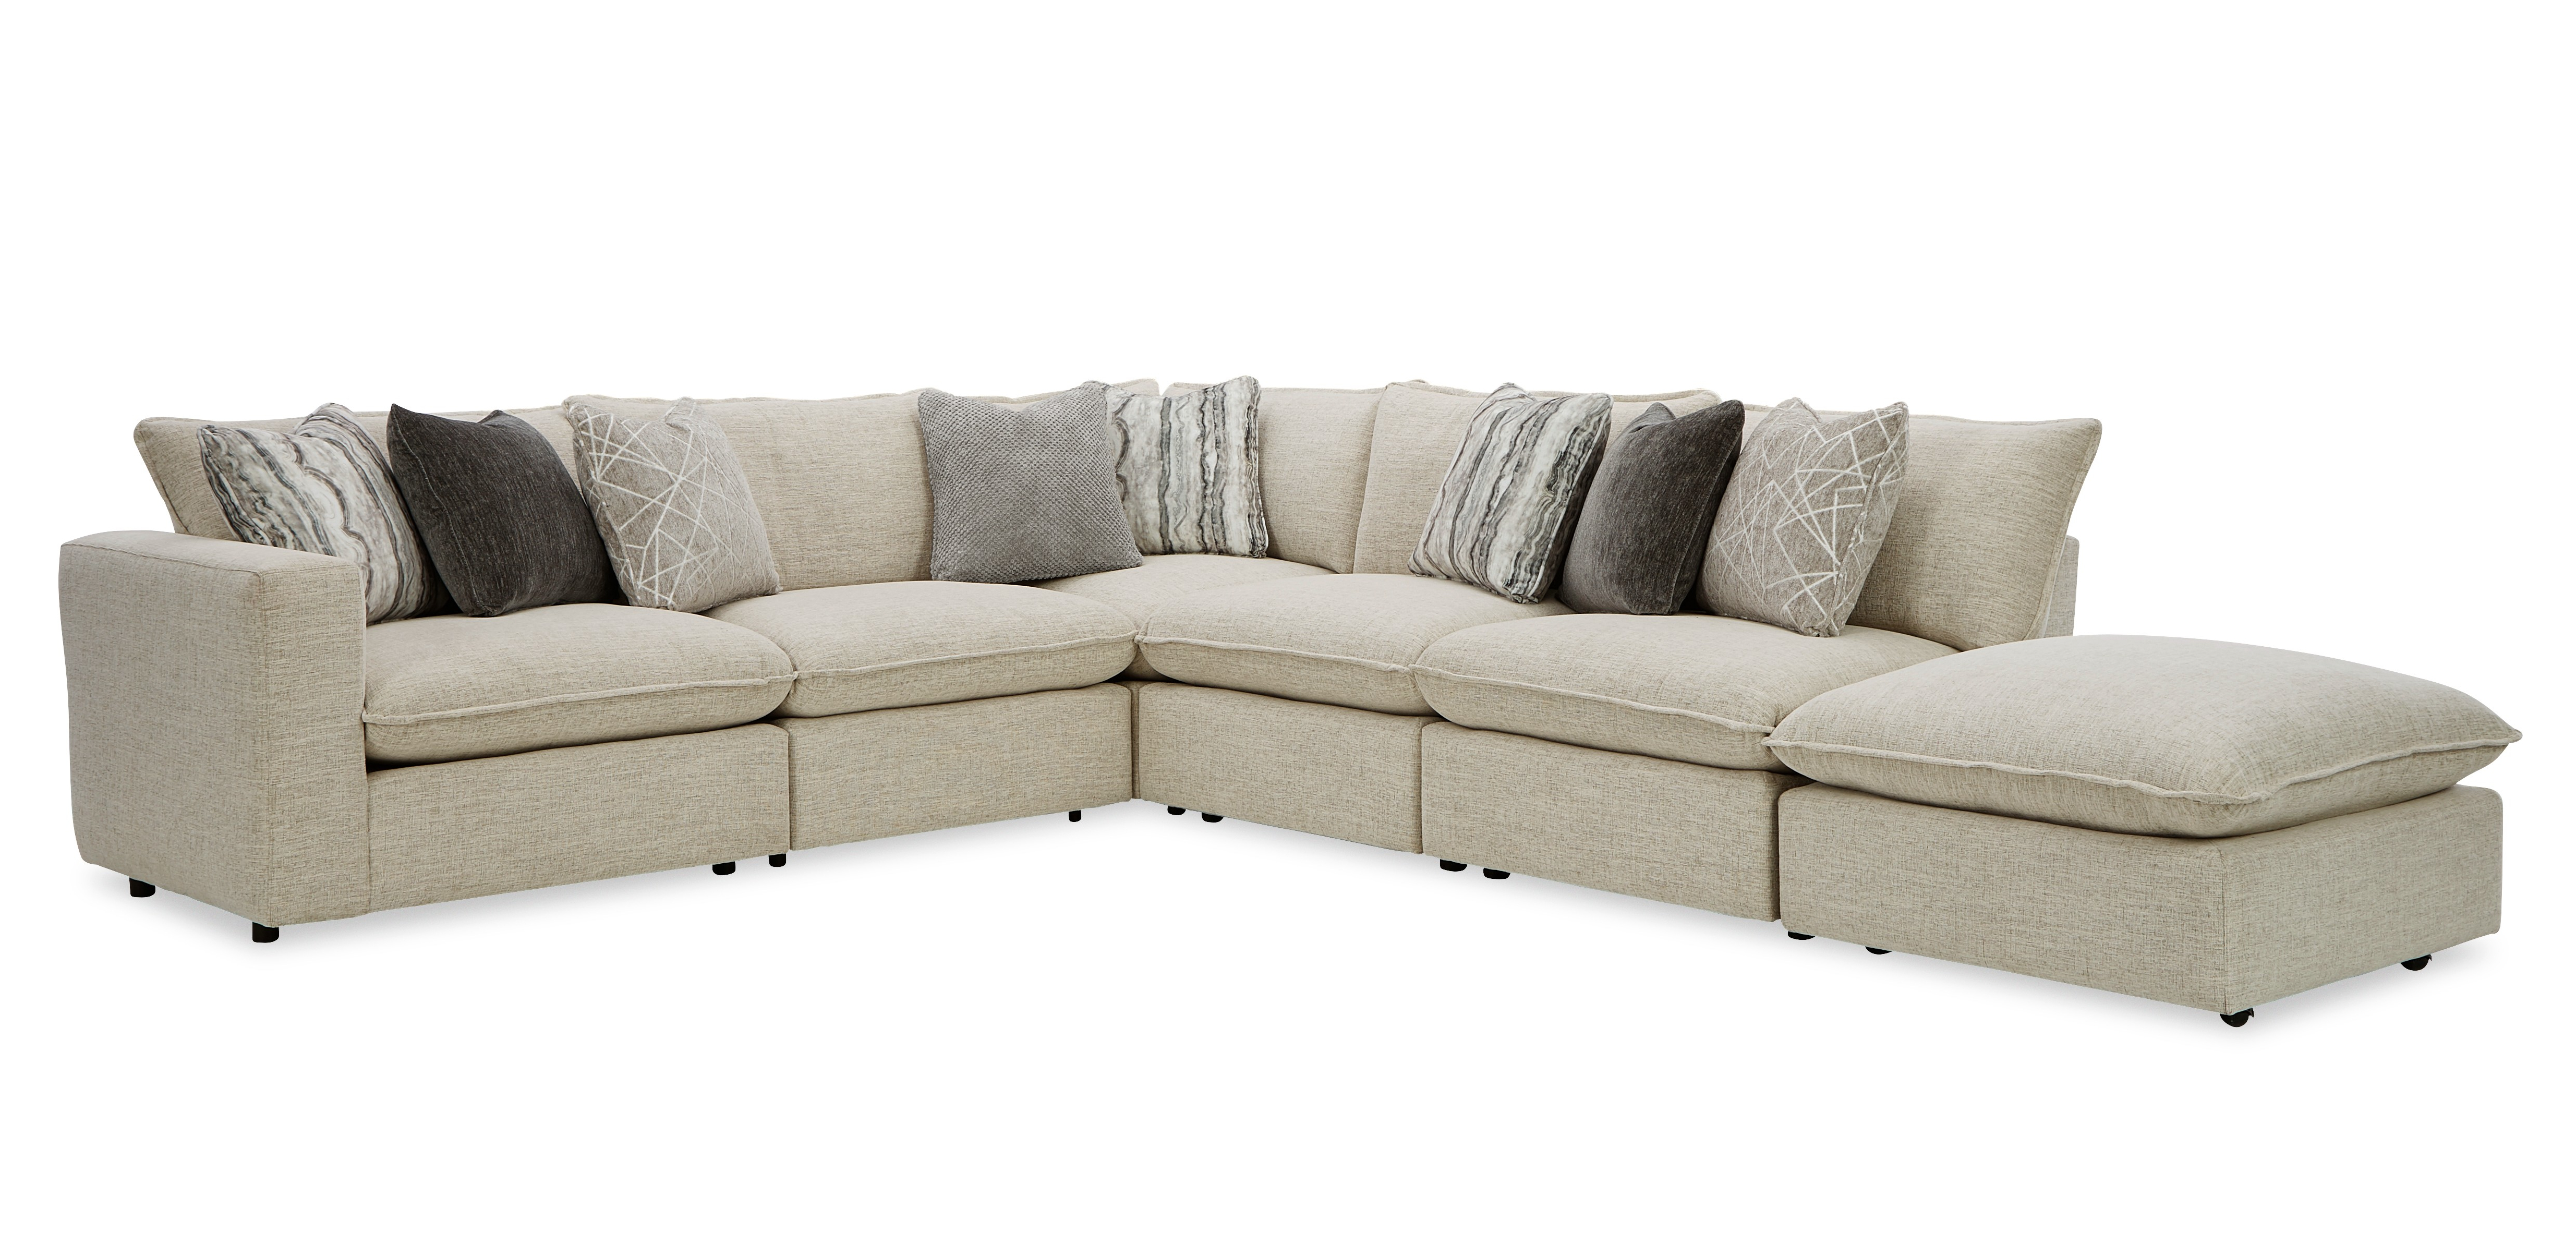 712741BD Sectional w/ One Bumper Ottoman & LAF Chair by Craftmaster at Powell's Furniture and Mattress